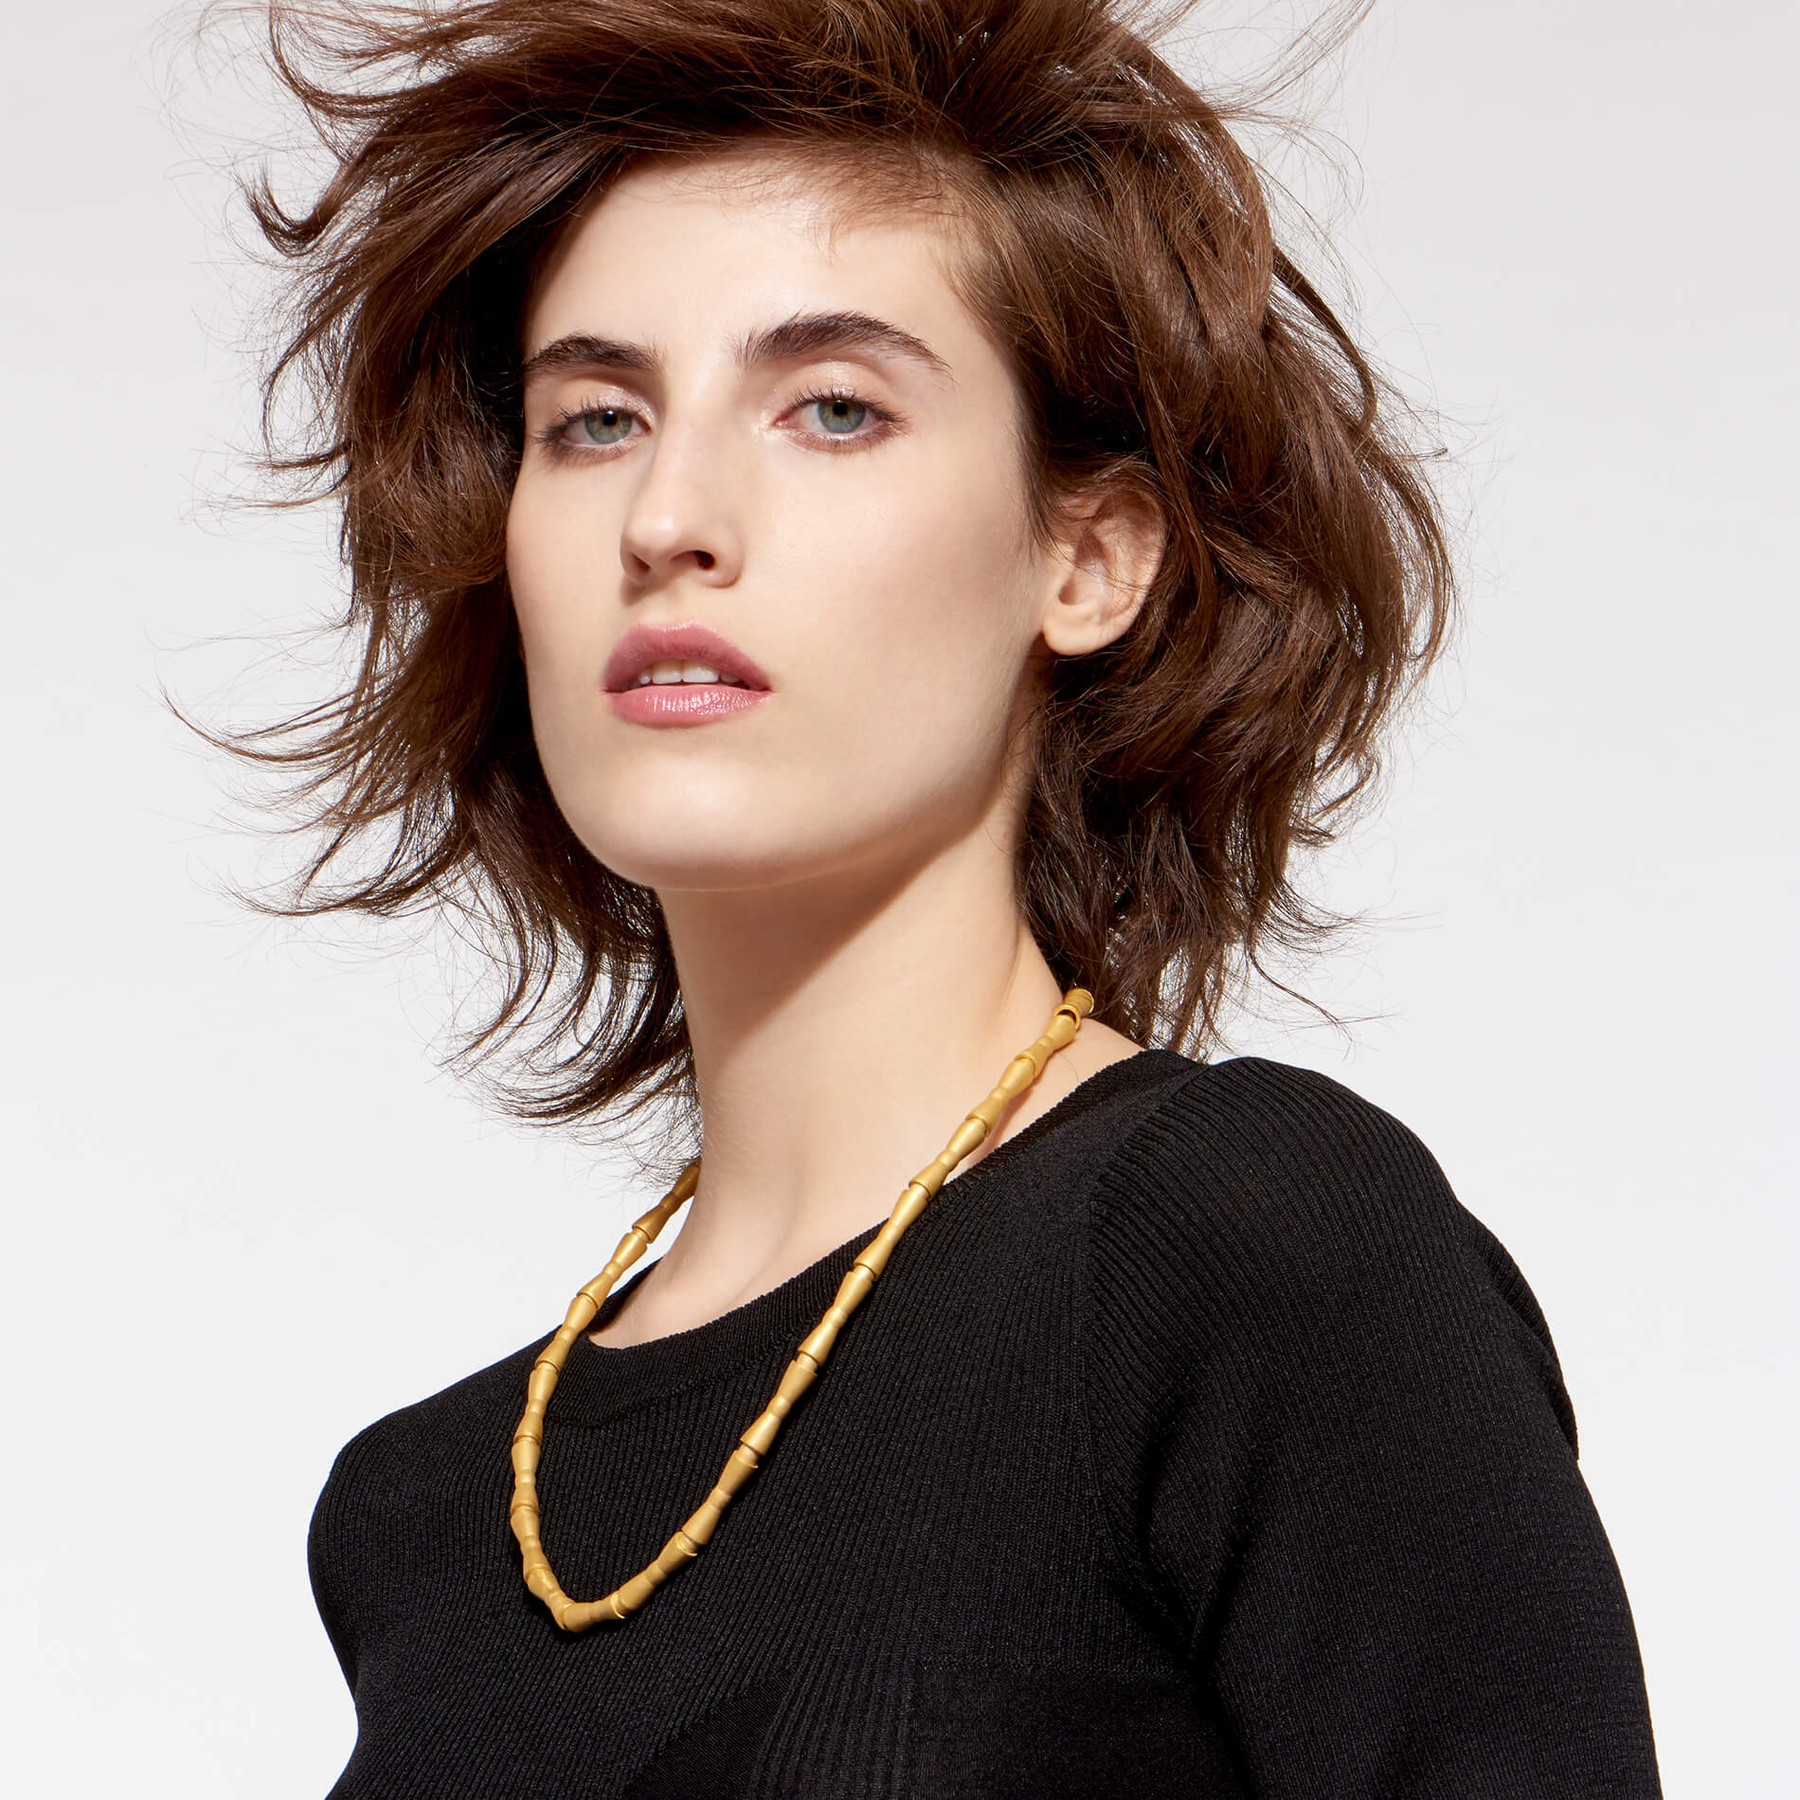 model with austere expression sporting 22 karat gold choker with bowtie-style beads in matte finish